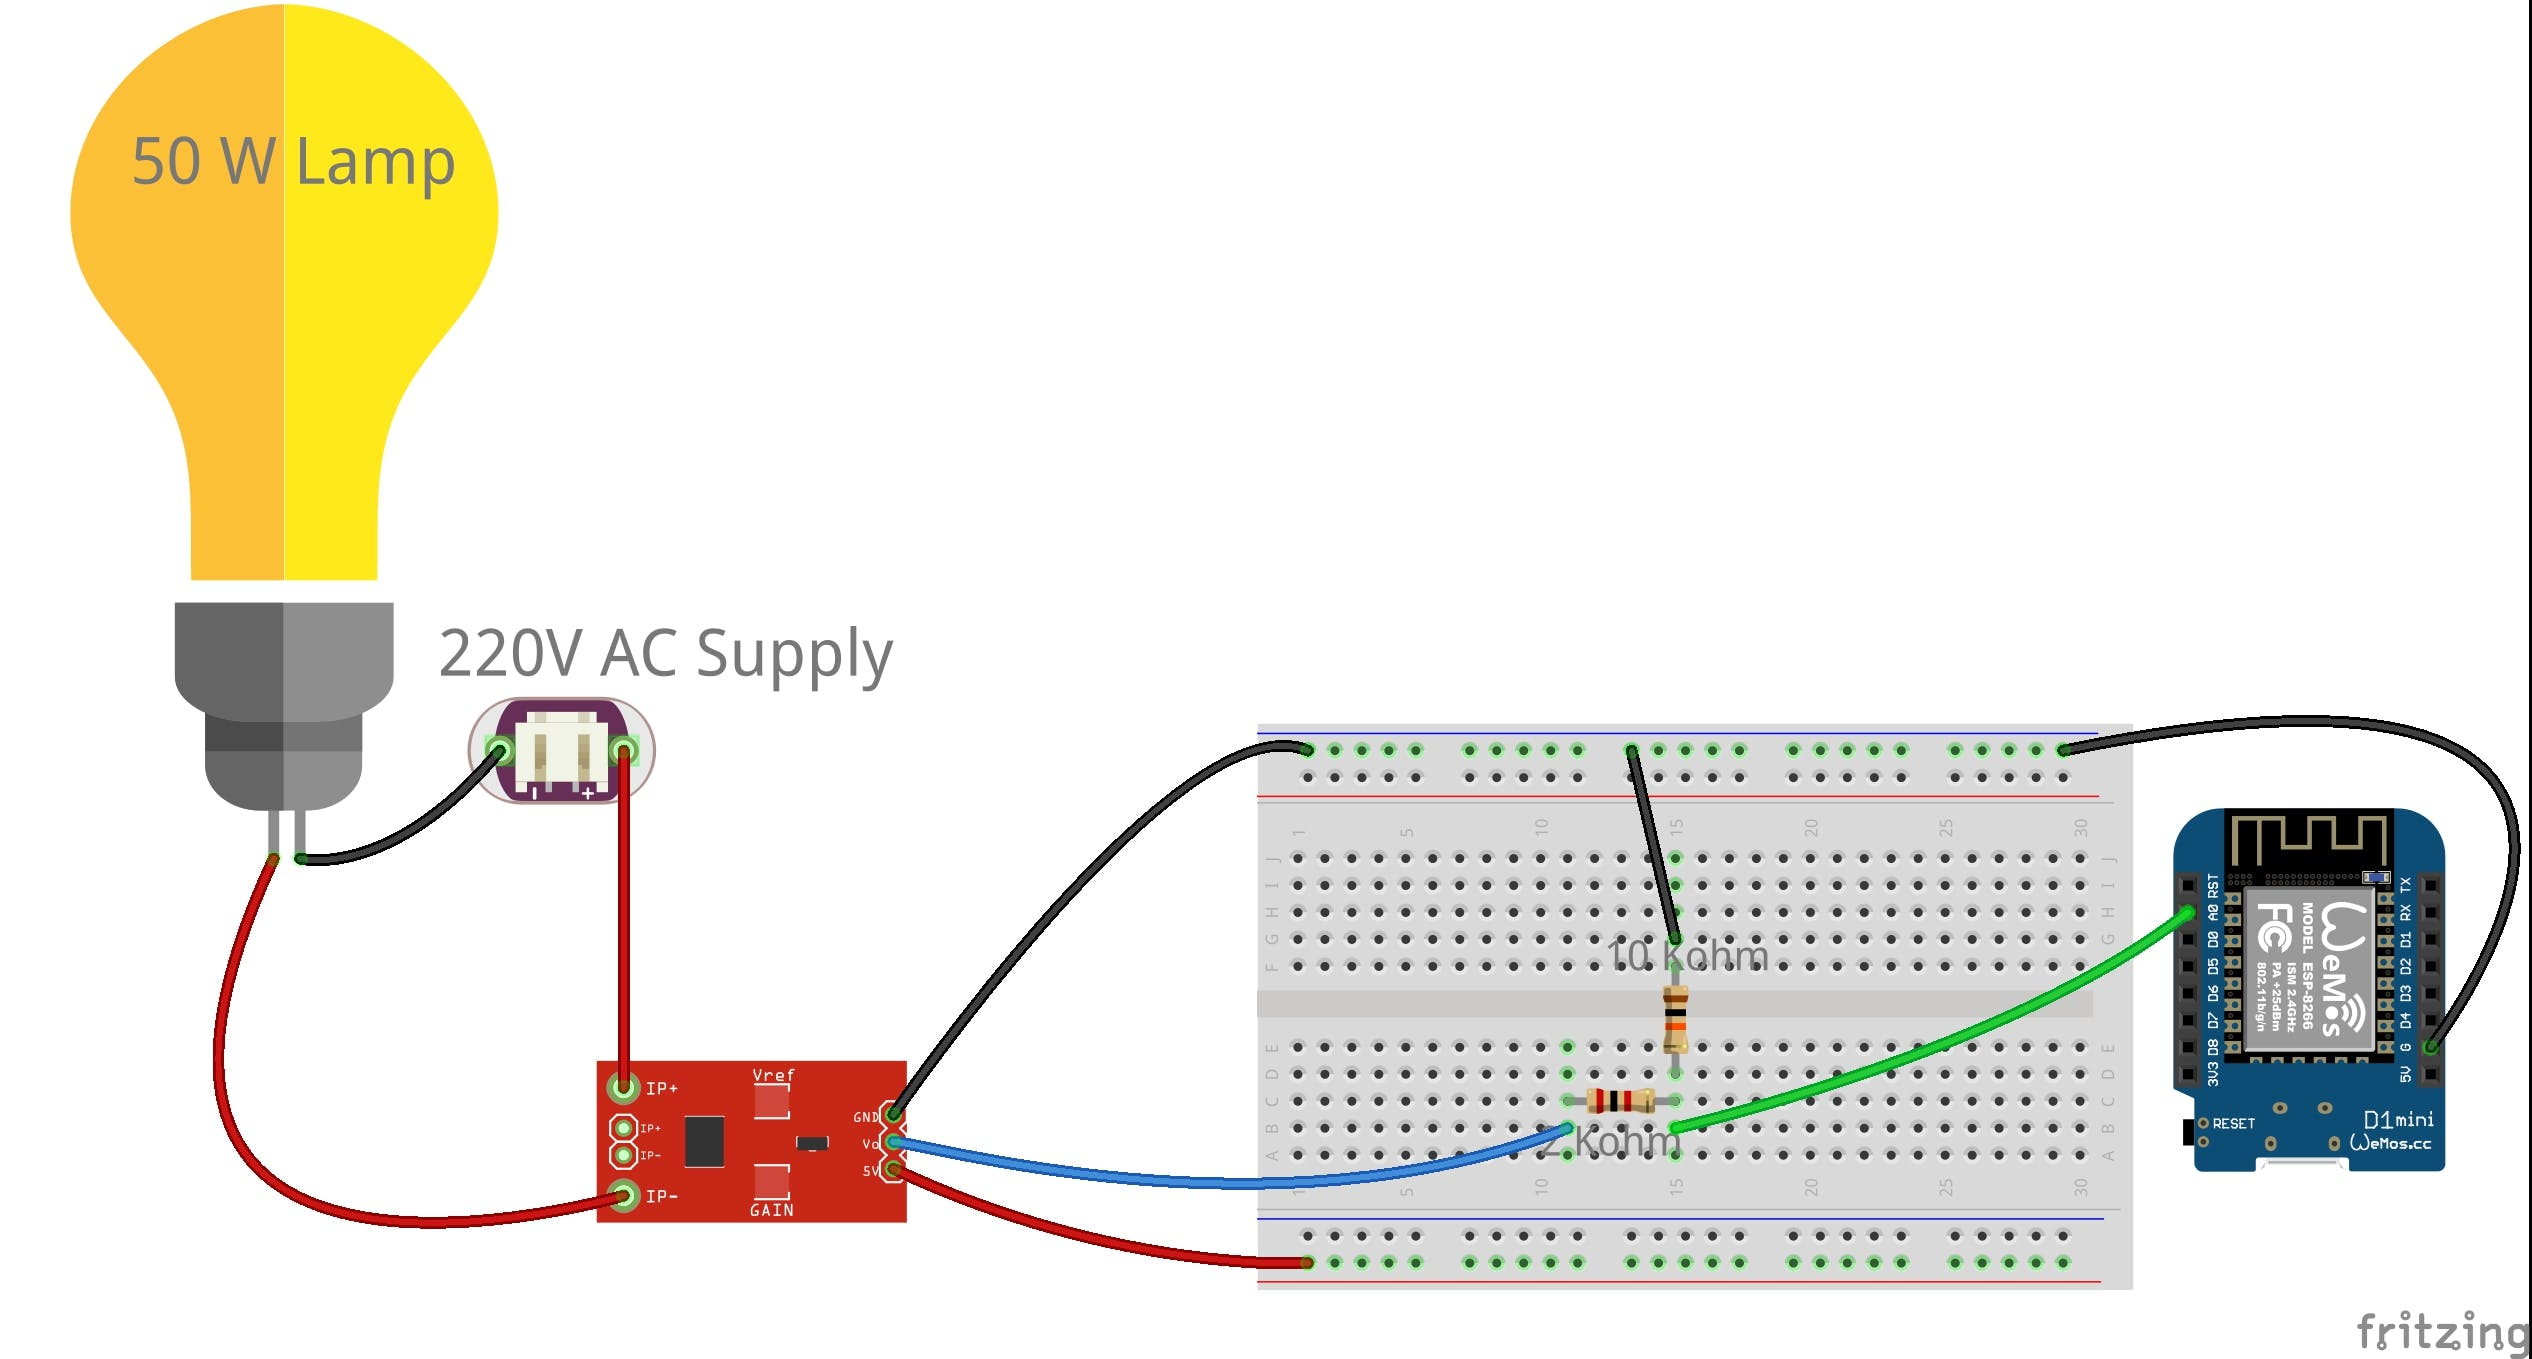 ACS712 connection diagram with Wemos D1 mini and Resistor divider